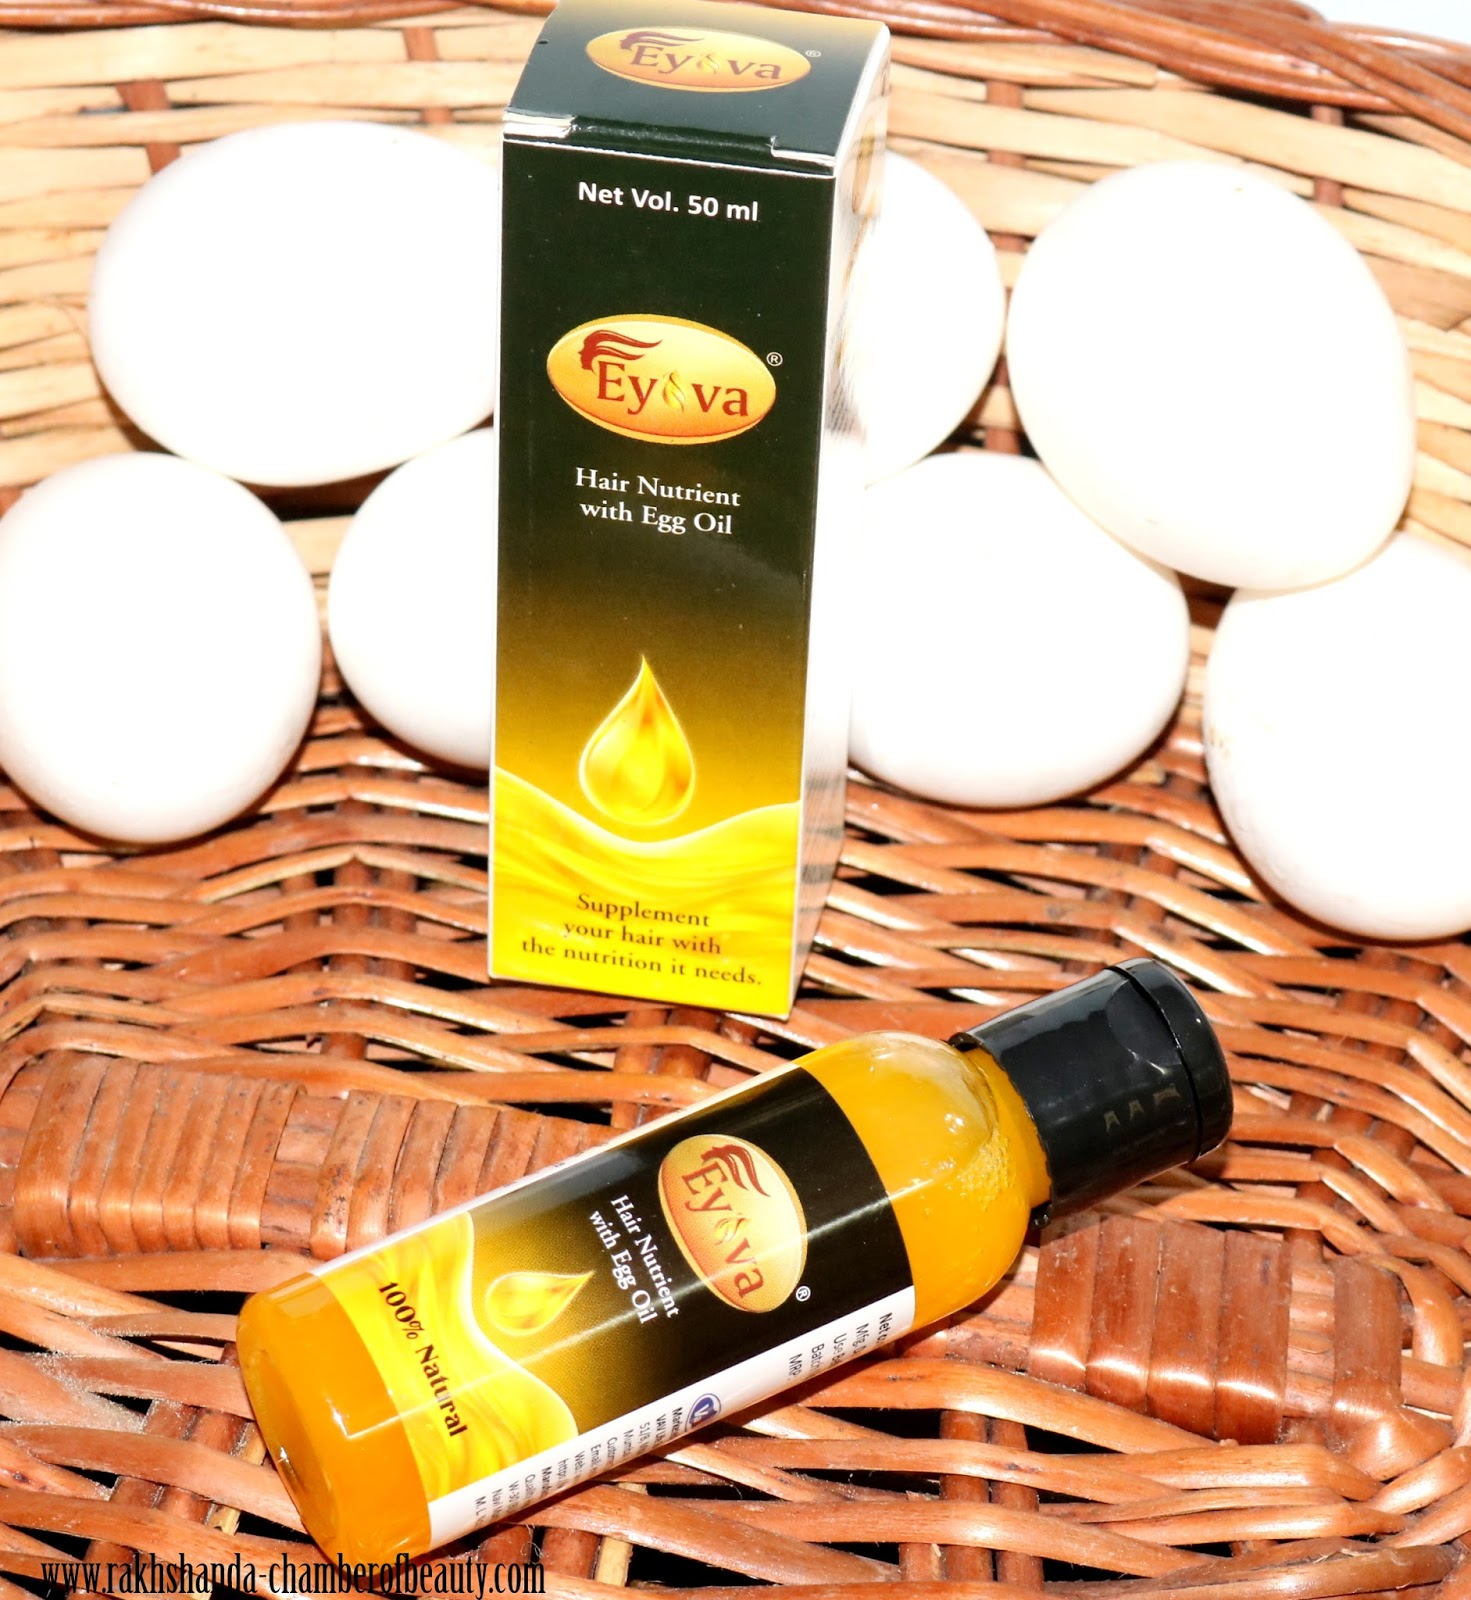 Eyova Hair Nutrient with Egg Oil Review